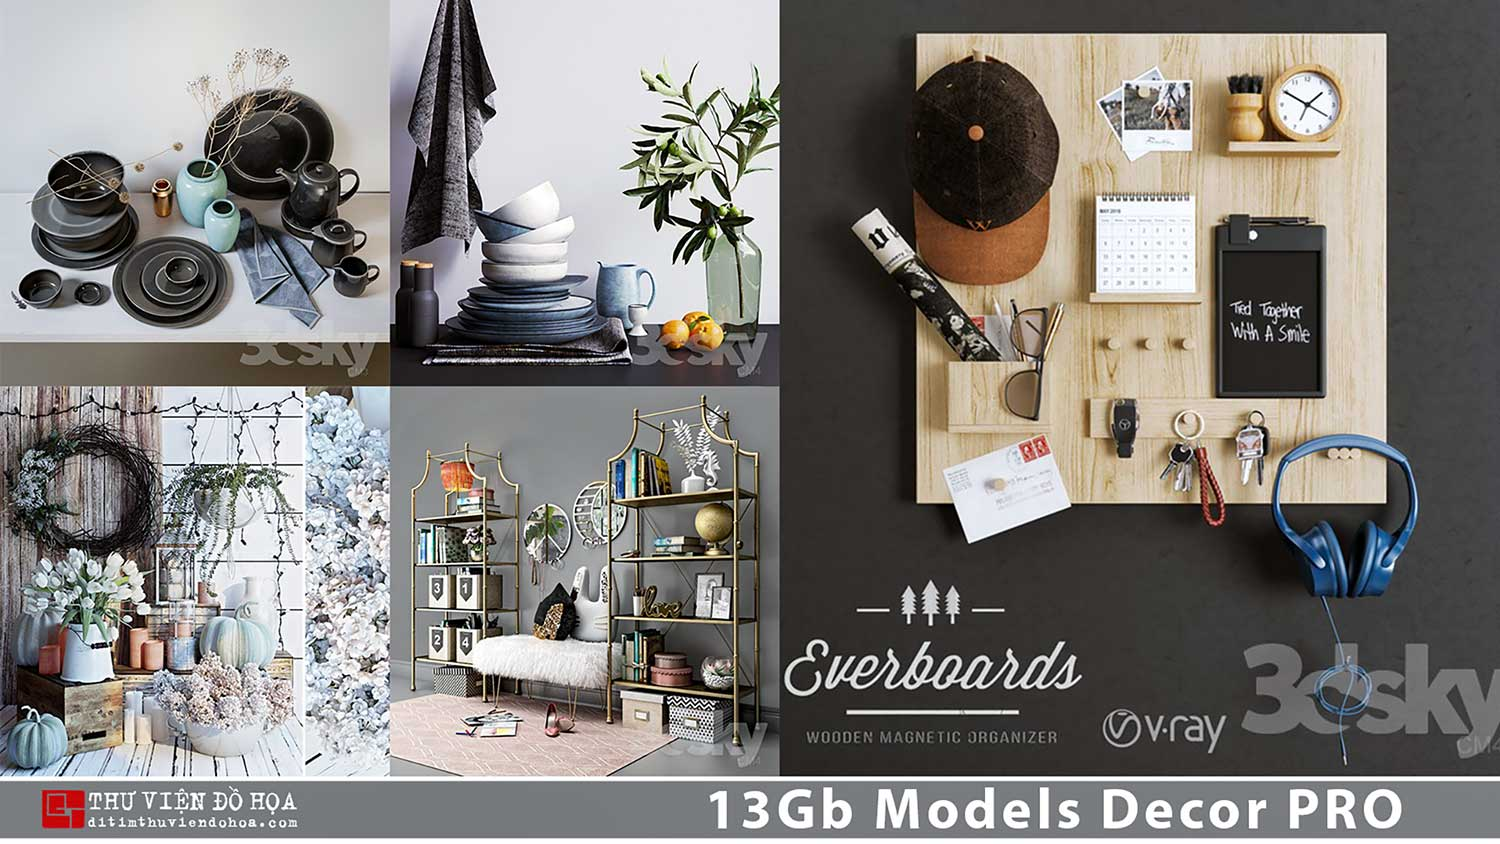 13Gb Models Decor PRO share by DitimStudio